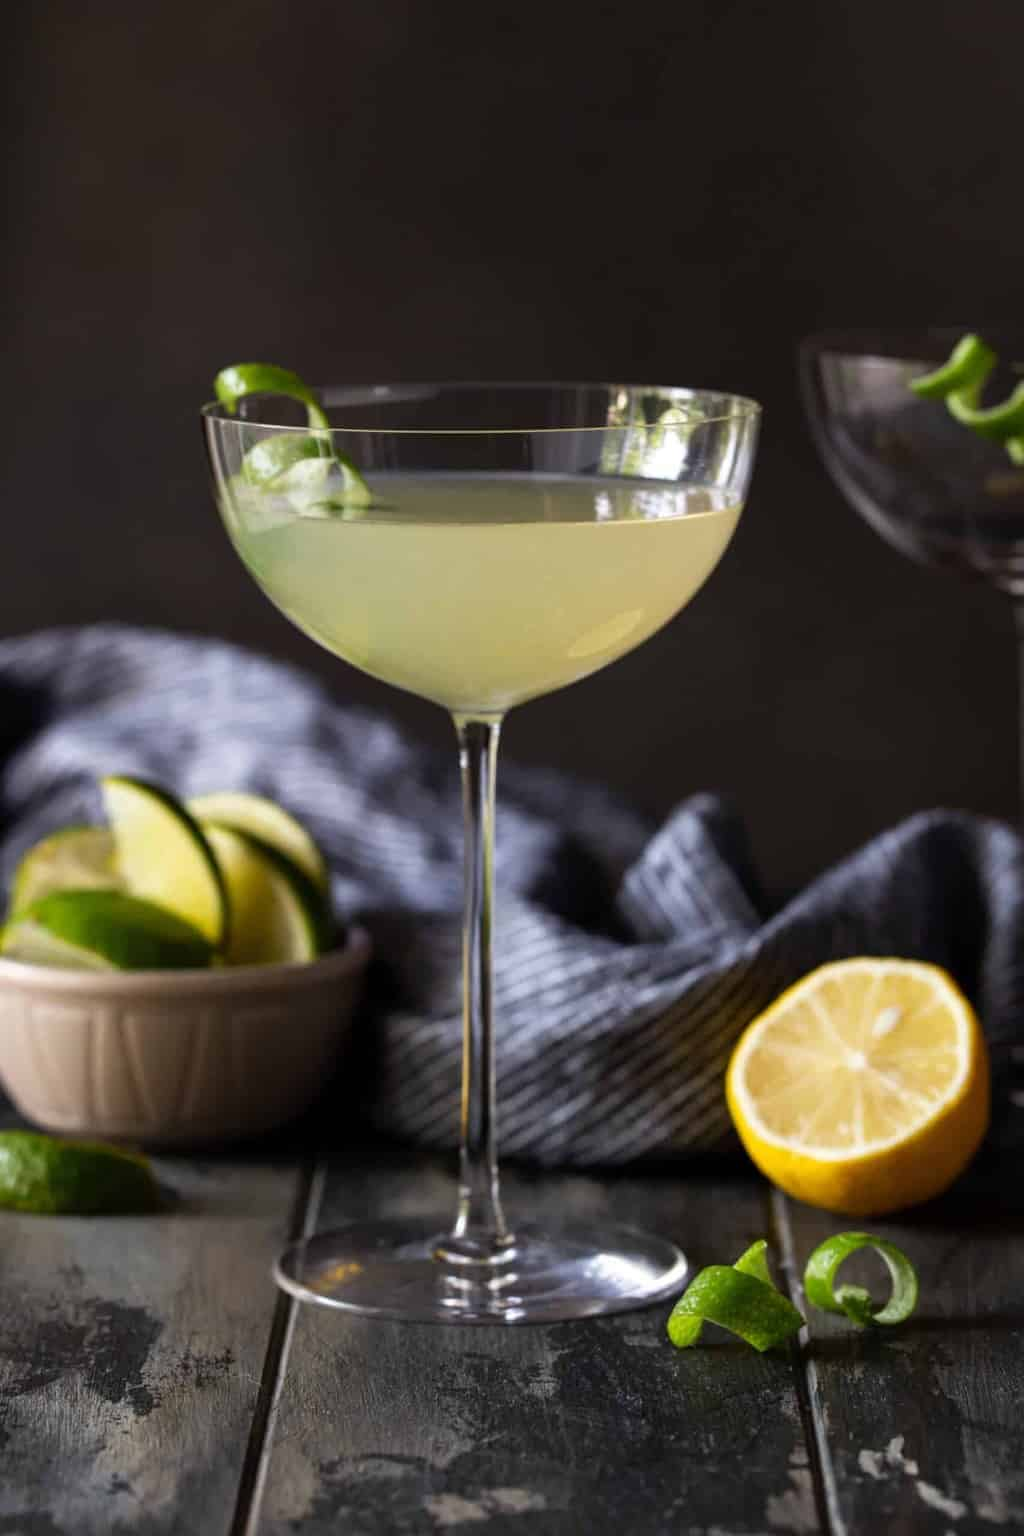 martini in tall coupe glass on a dark background ,with half of a lemon and lime on plate.